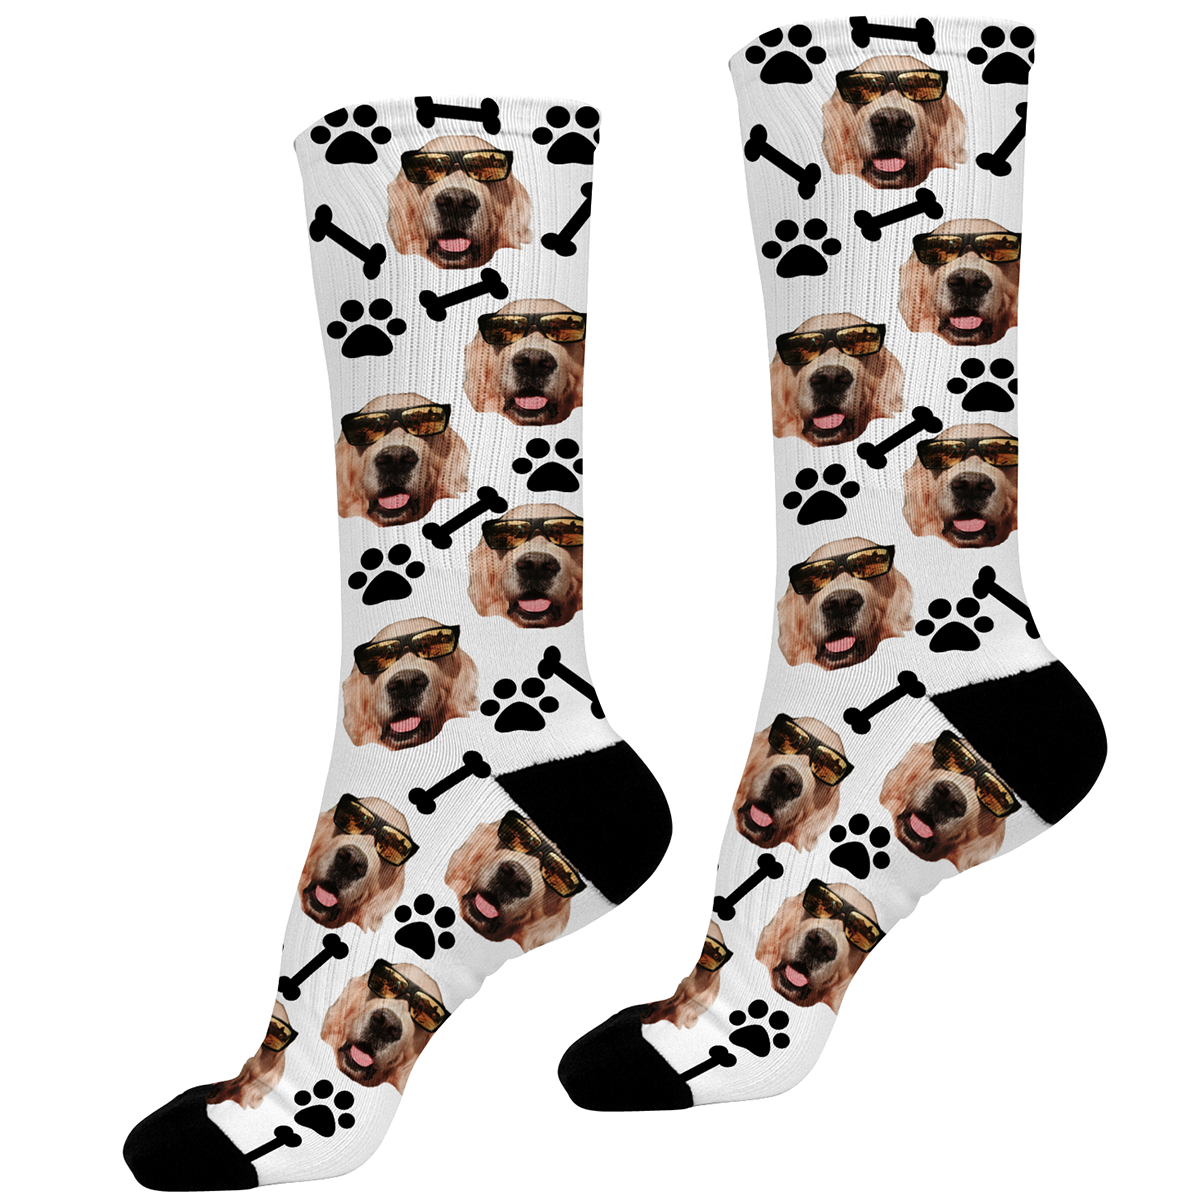 Add A Dogs Face To Socks